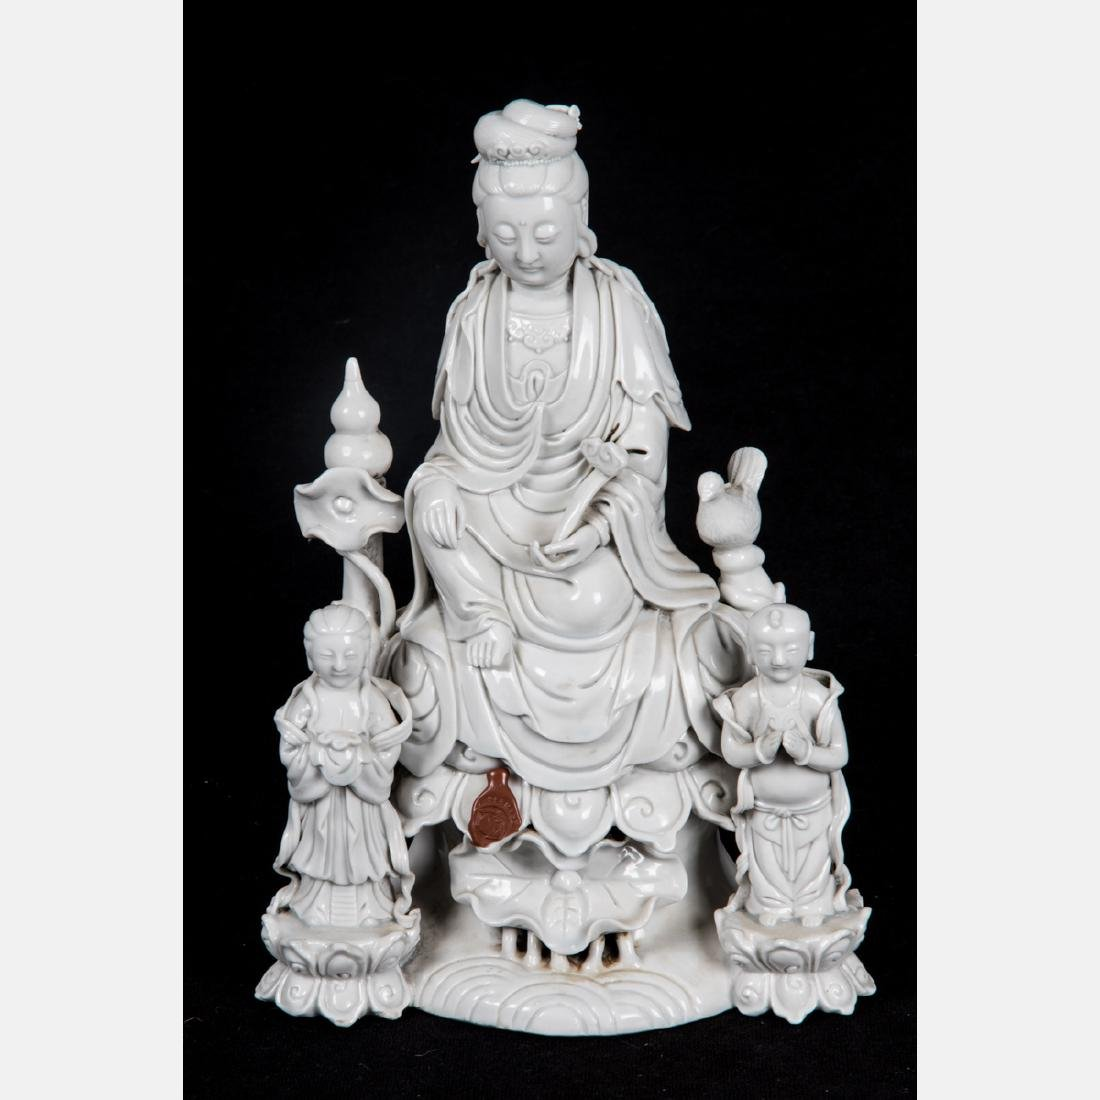 A Chinese Porcelain Blanc de Chine Figure of Guanyin